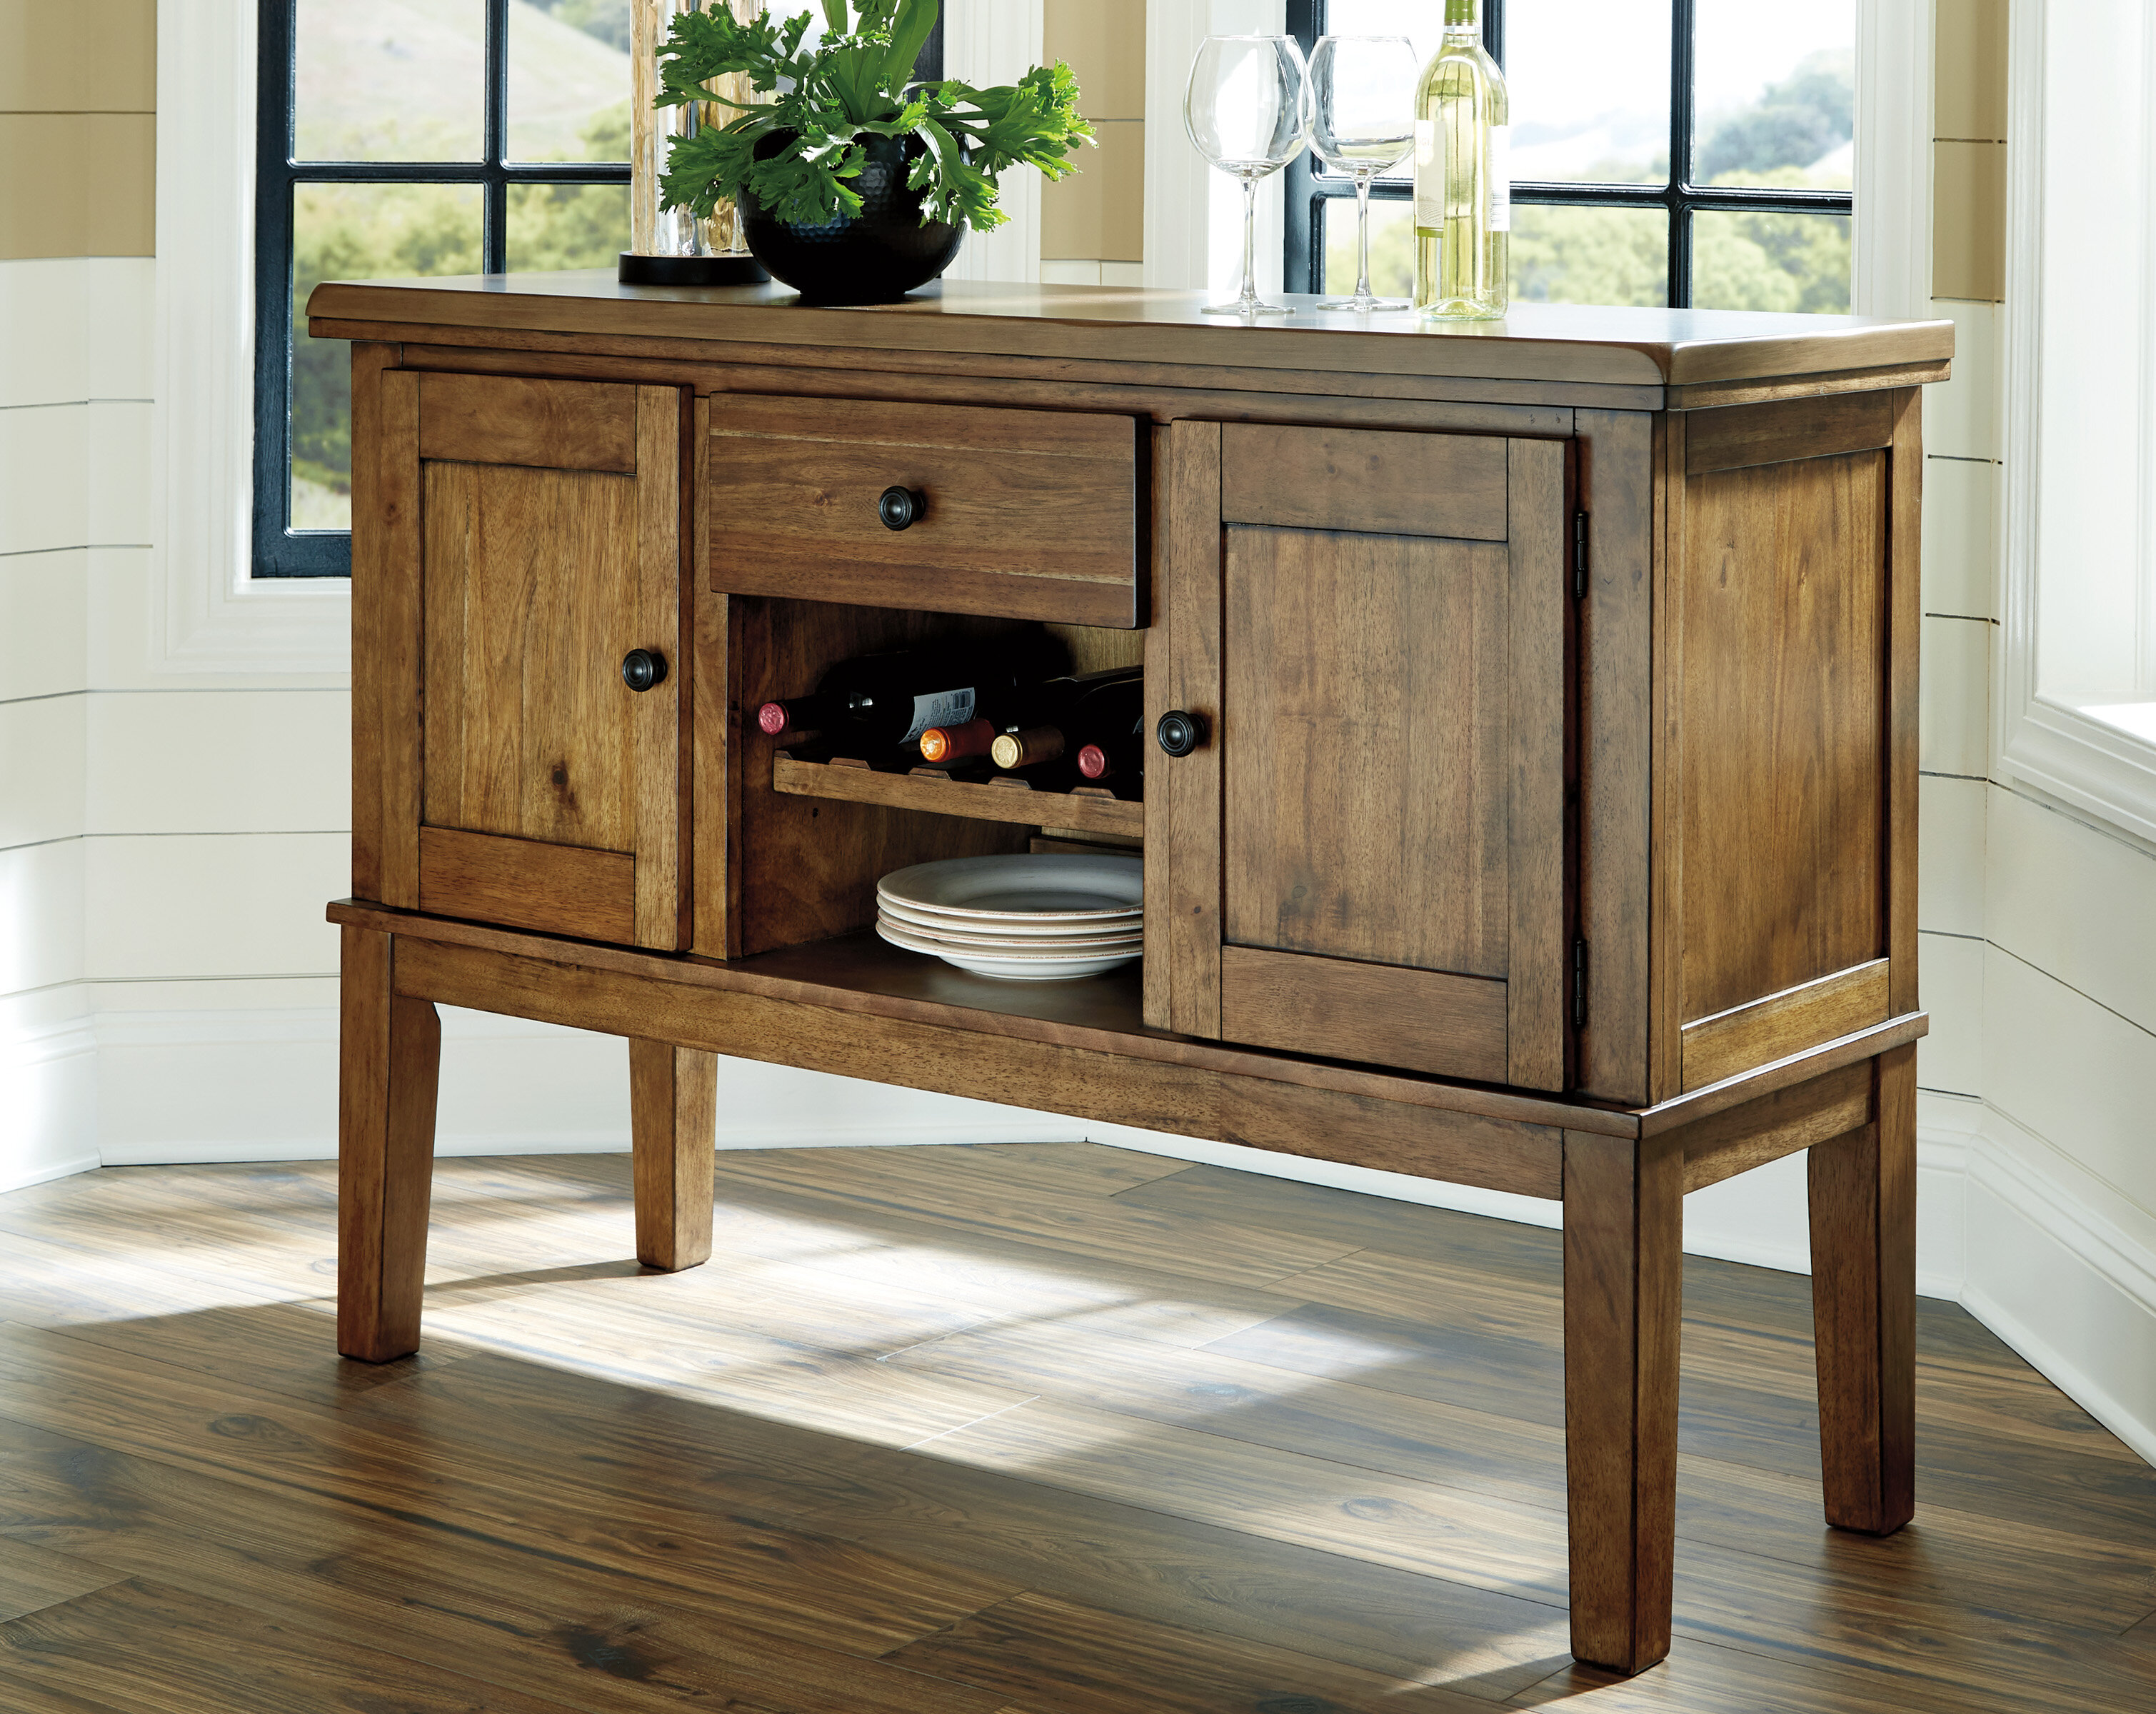 Millwood Pines Fia Dining Room Buffet Table Reviews